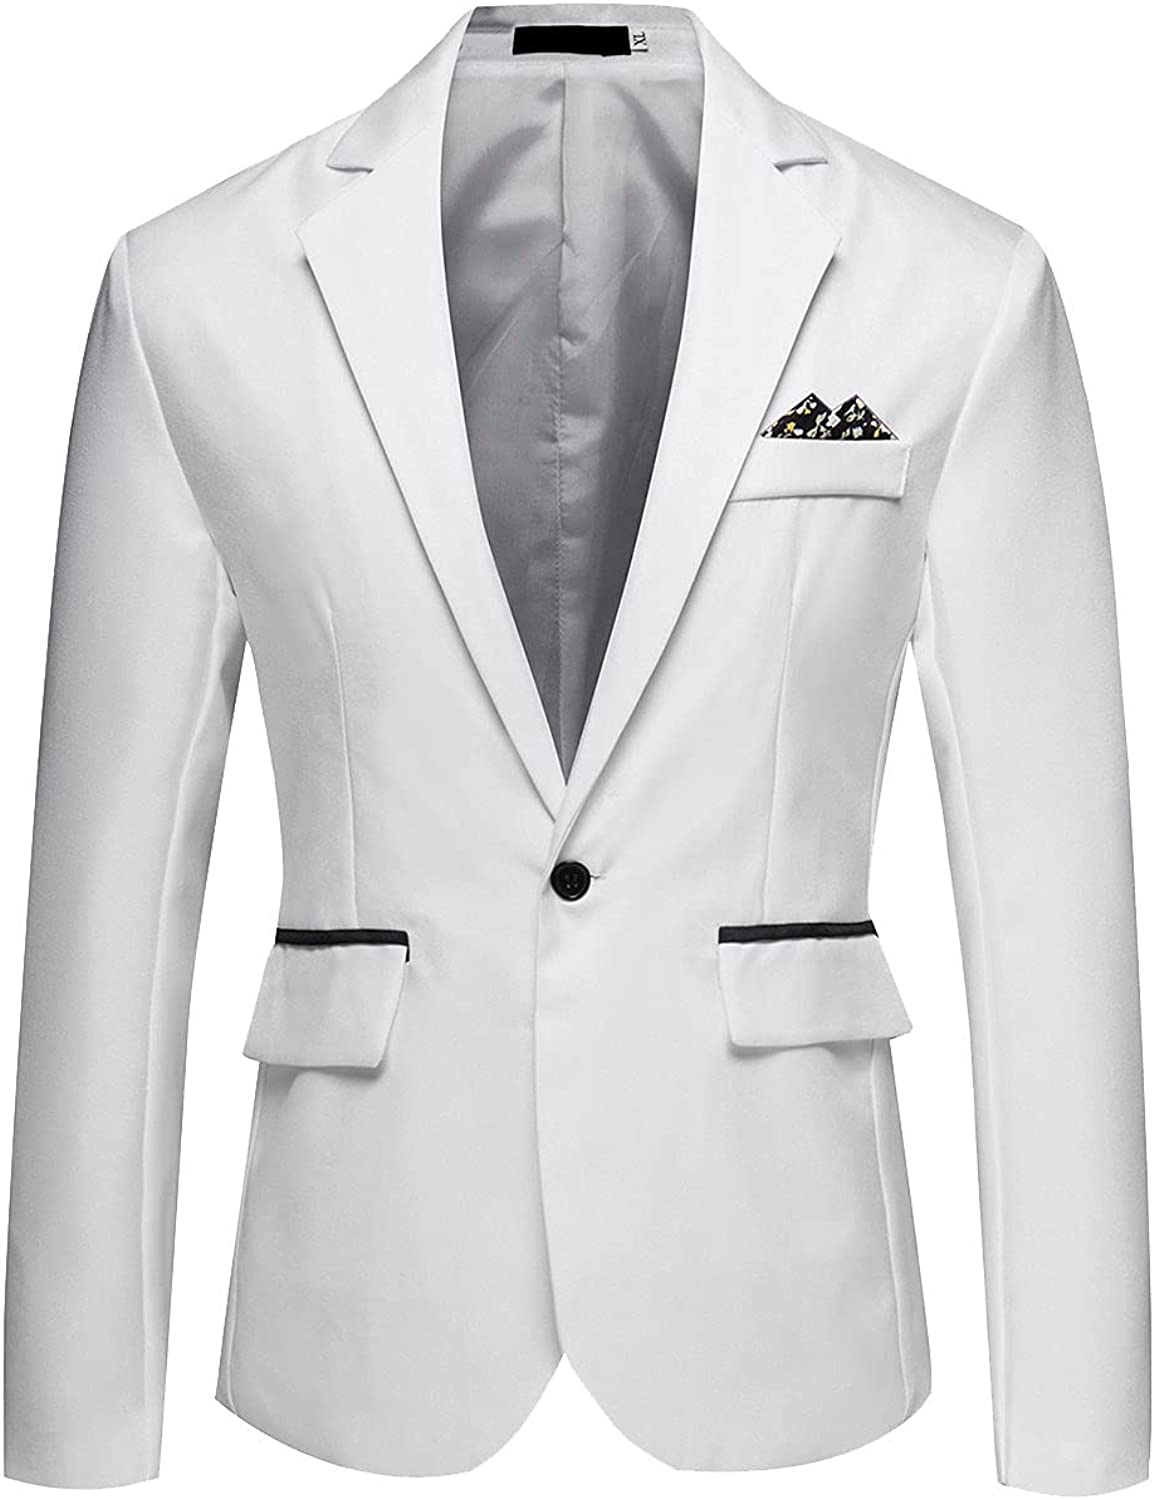 2021 Fashion Suit for Men's Blazer England Style Solid Slim Casual Single Breasted Youth Coat Jacket